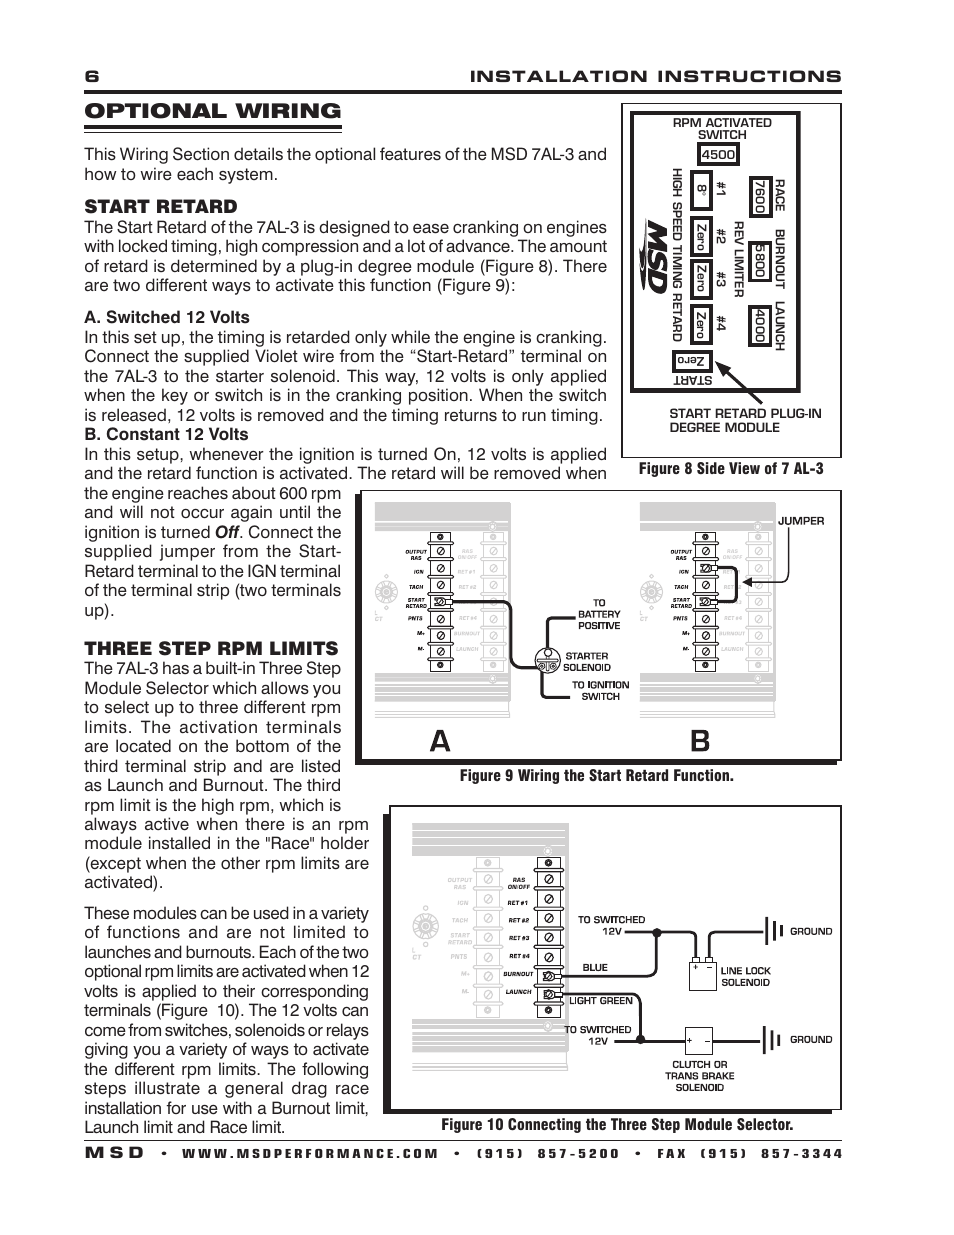 Wonderful 1986s 10 Engine Wiring Diagram Images - Wiring Standart ...